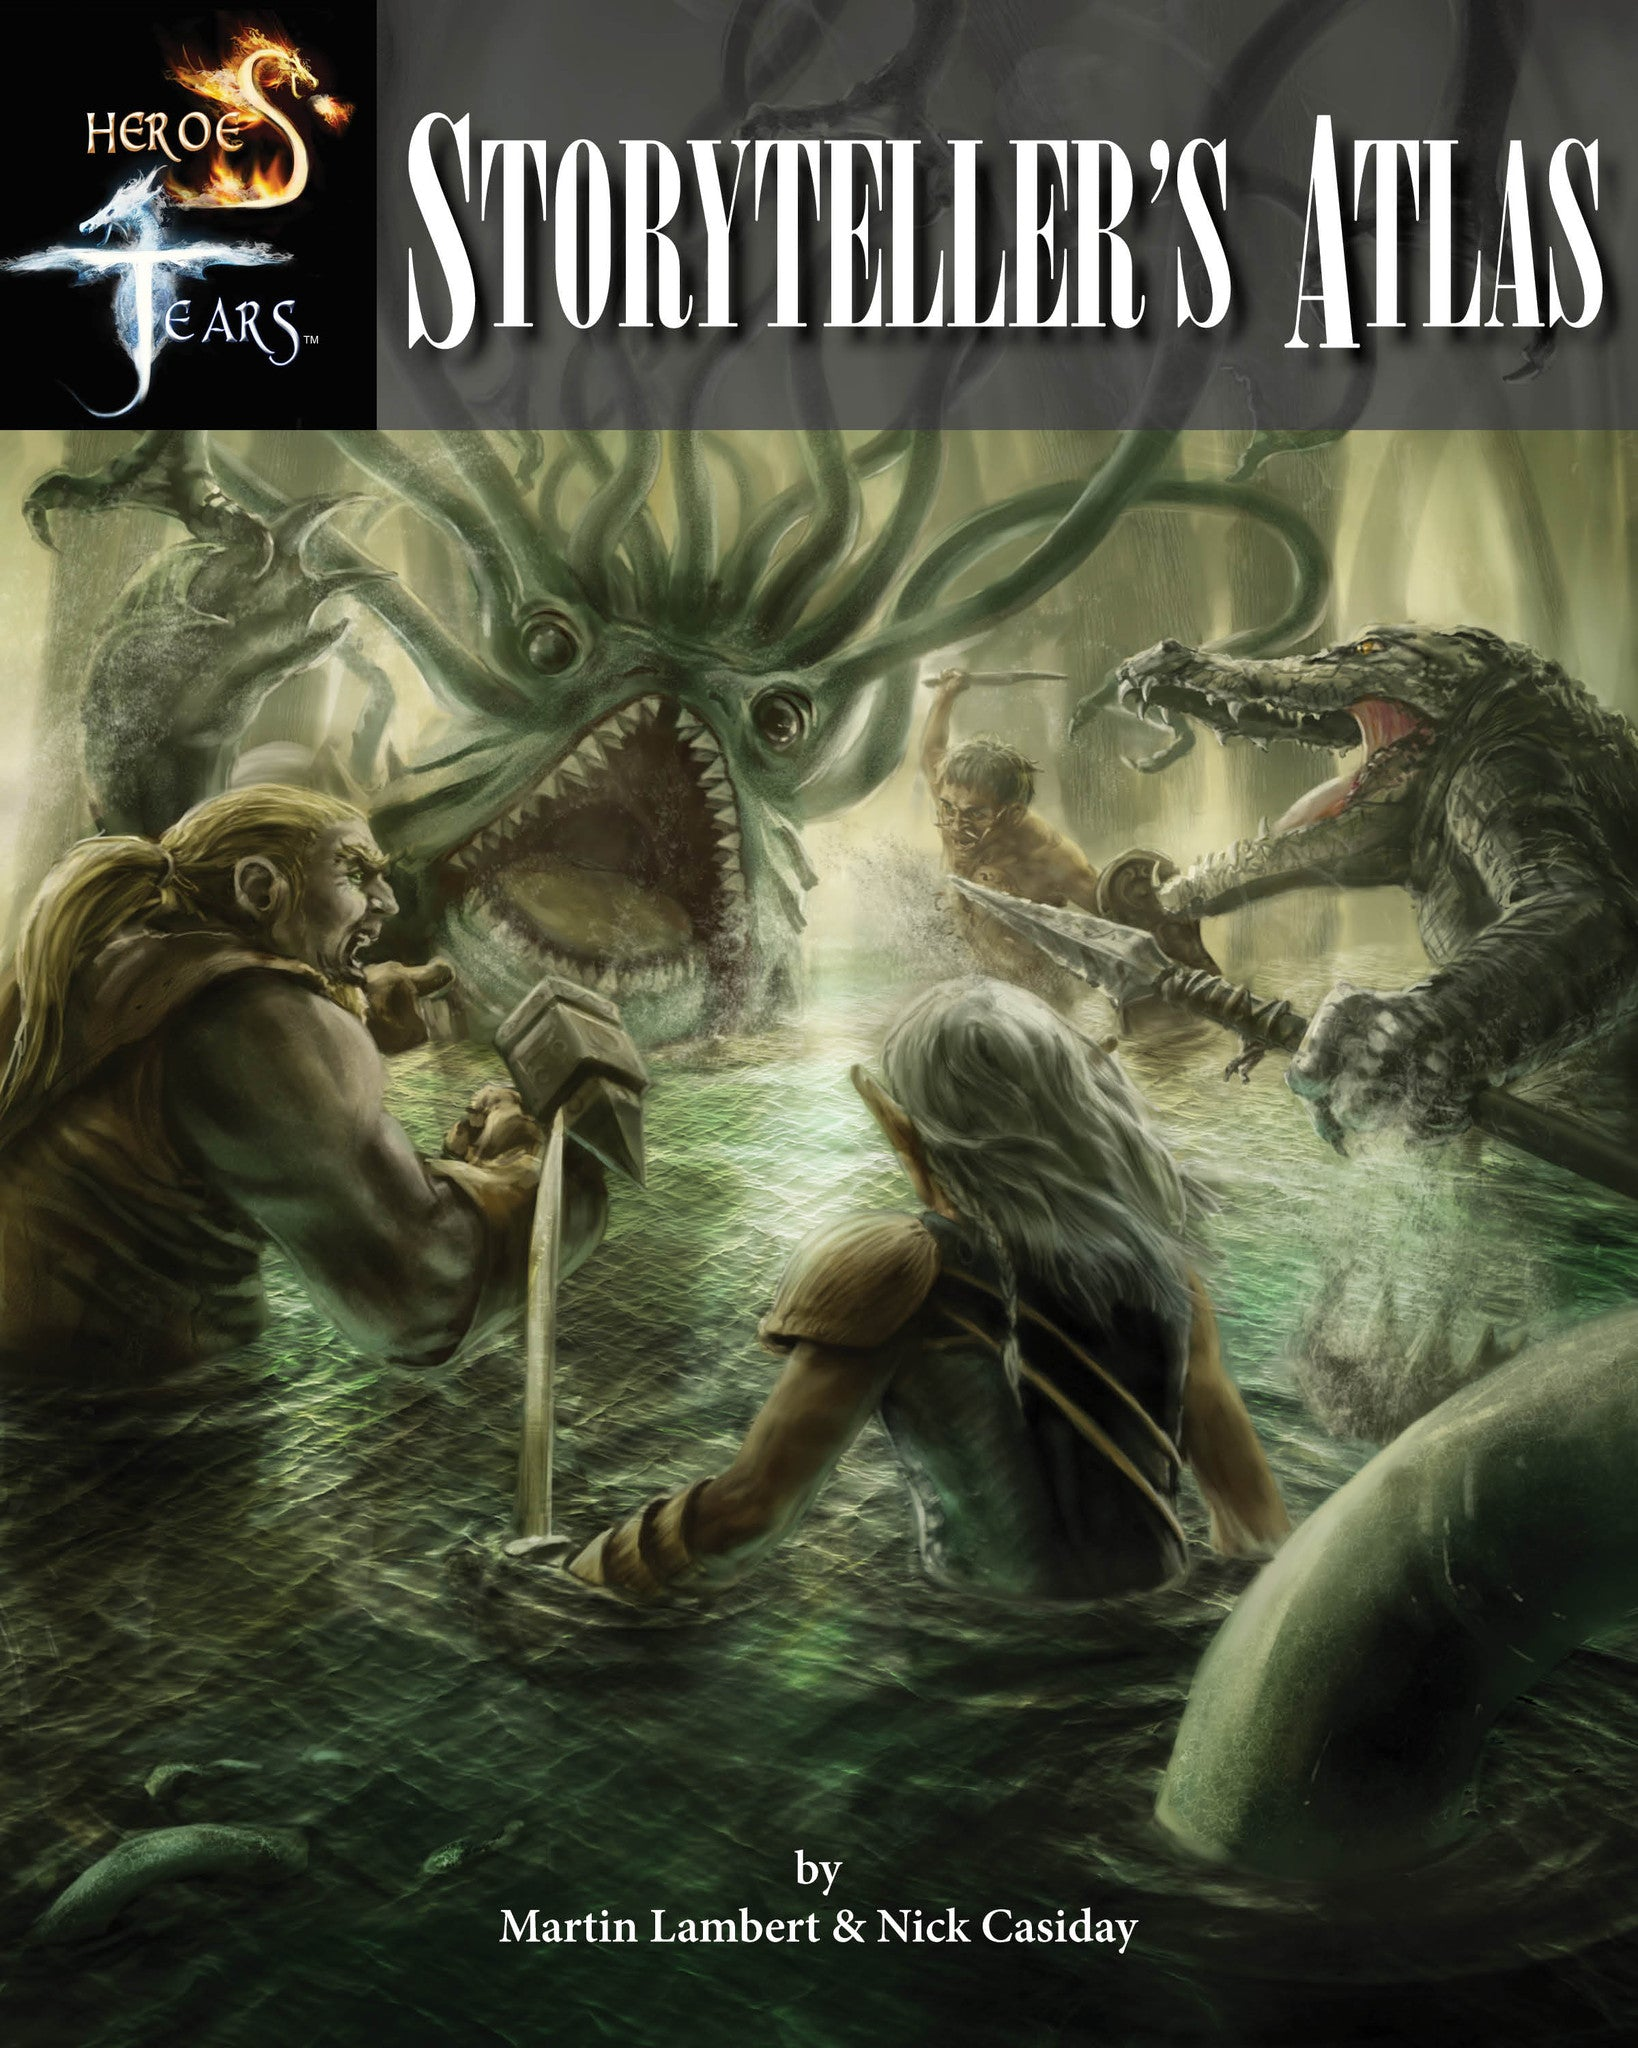 The Storyteller's Atlas - Pre-Order